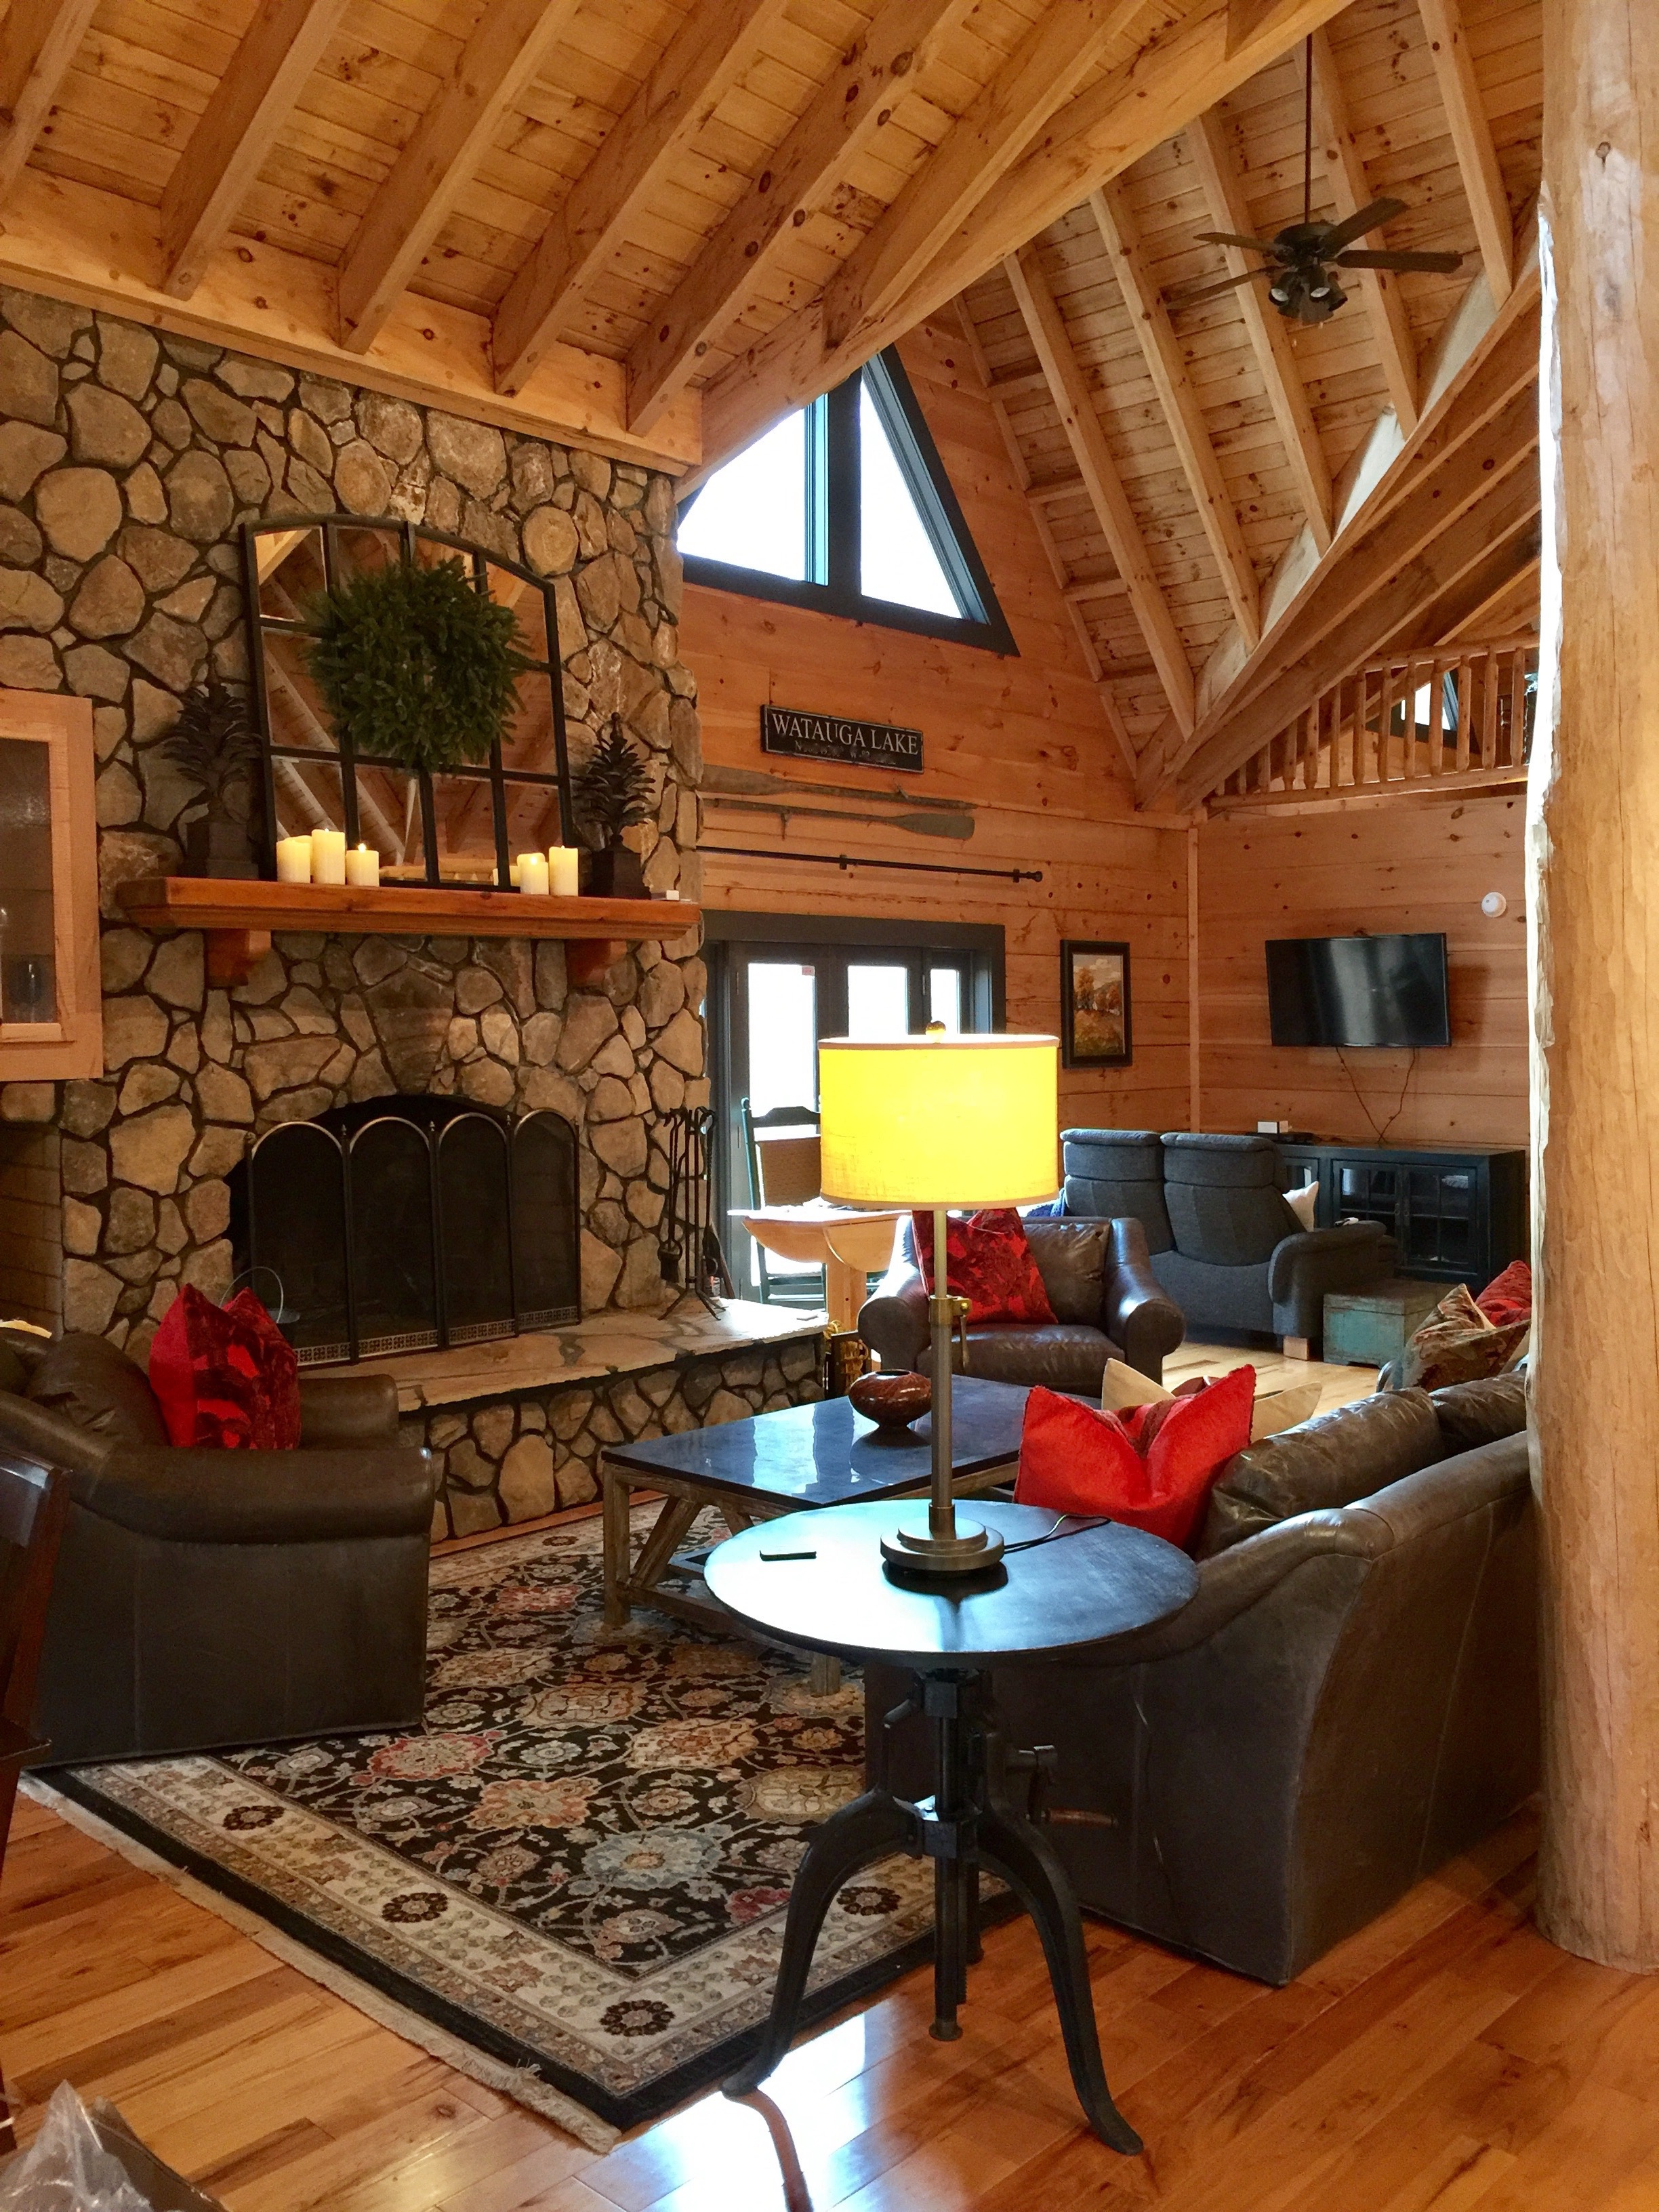 The charcoal painted trim stands crisply against the texture of the logs.